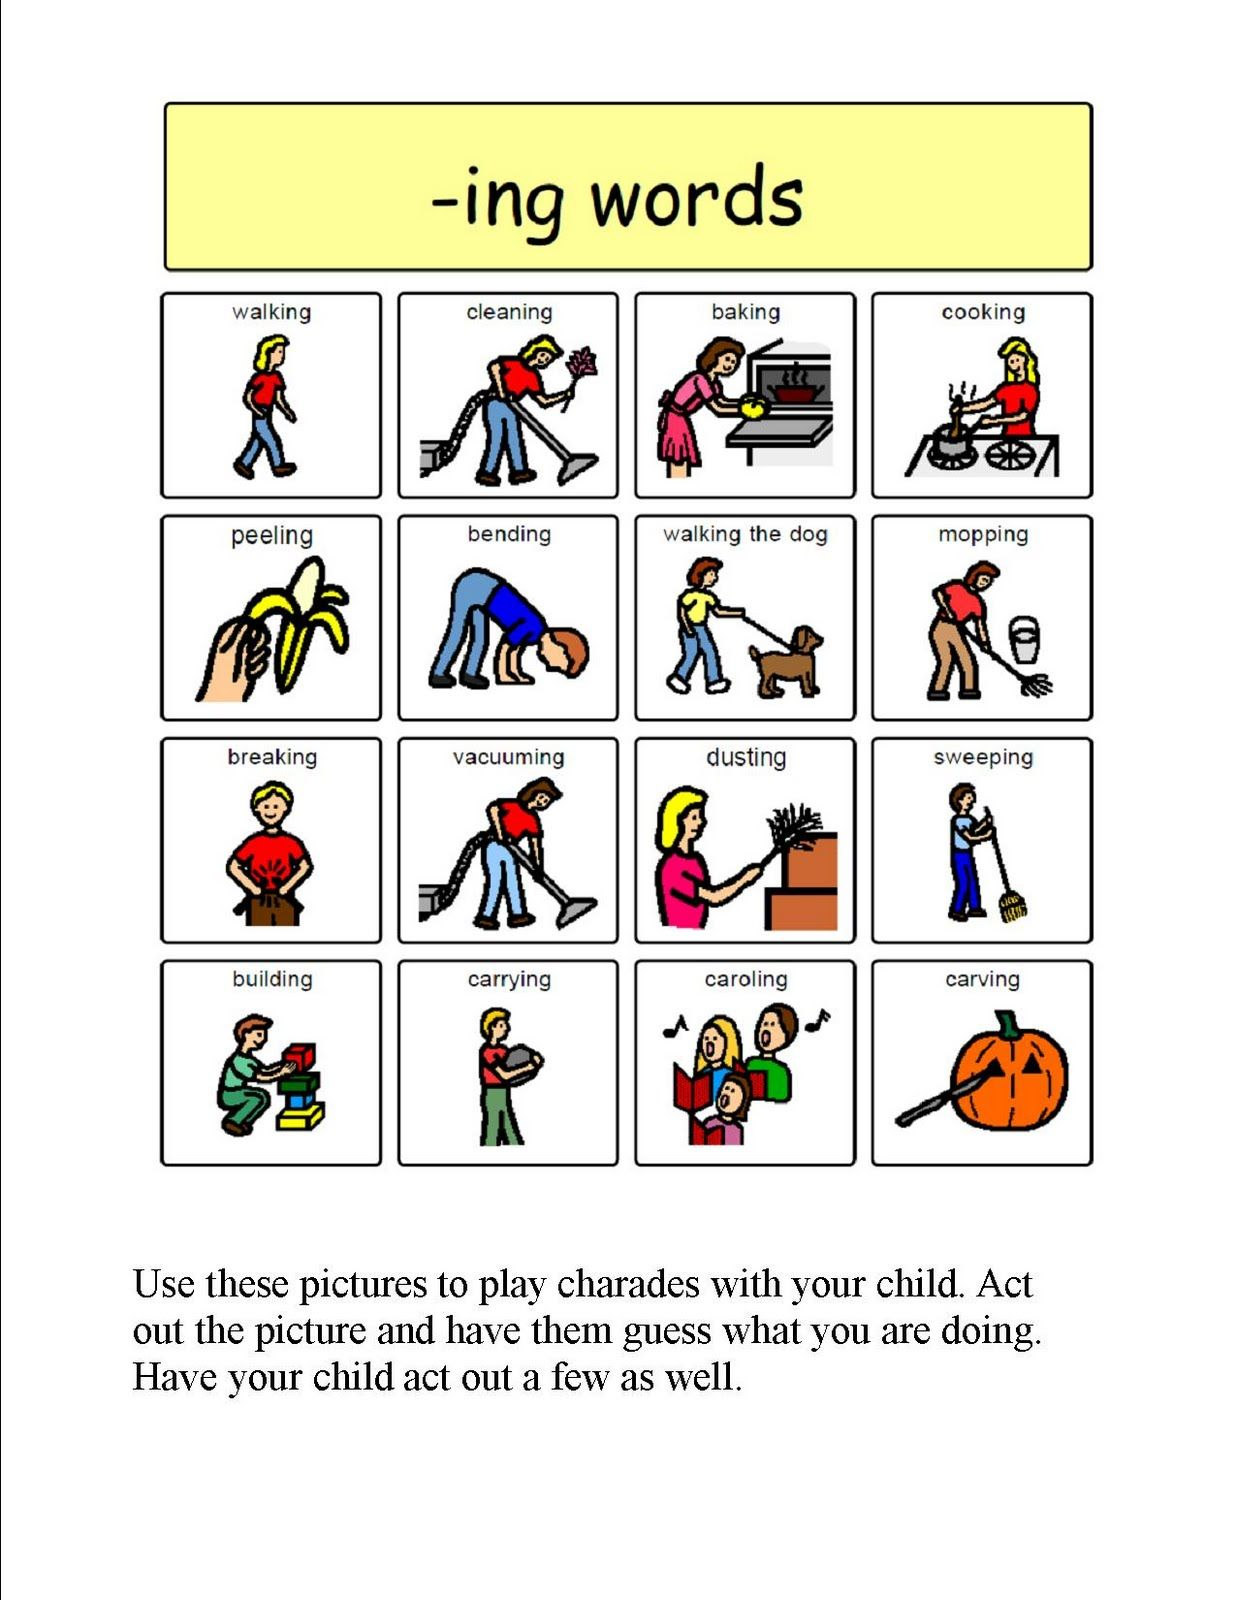 Speech Therapy With Miss Nicole Ing Verbs Verbs Speech Therapy Speech Language Activities Speech Therapy Activities [ 1600 x 1236 Pixel ]